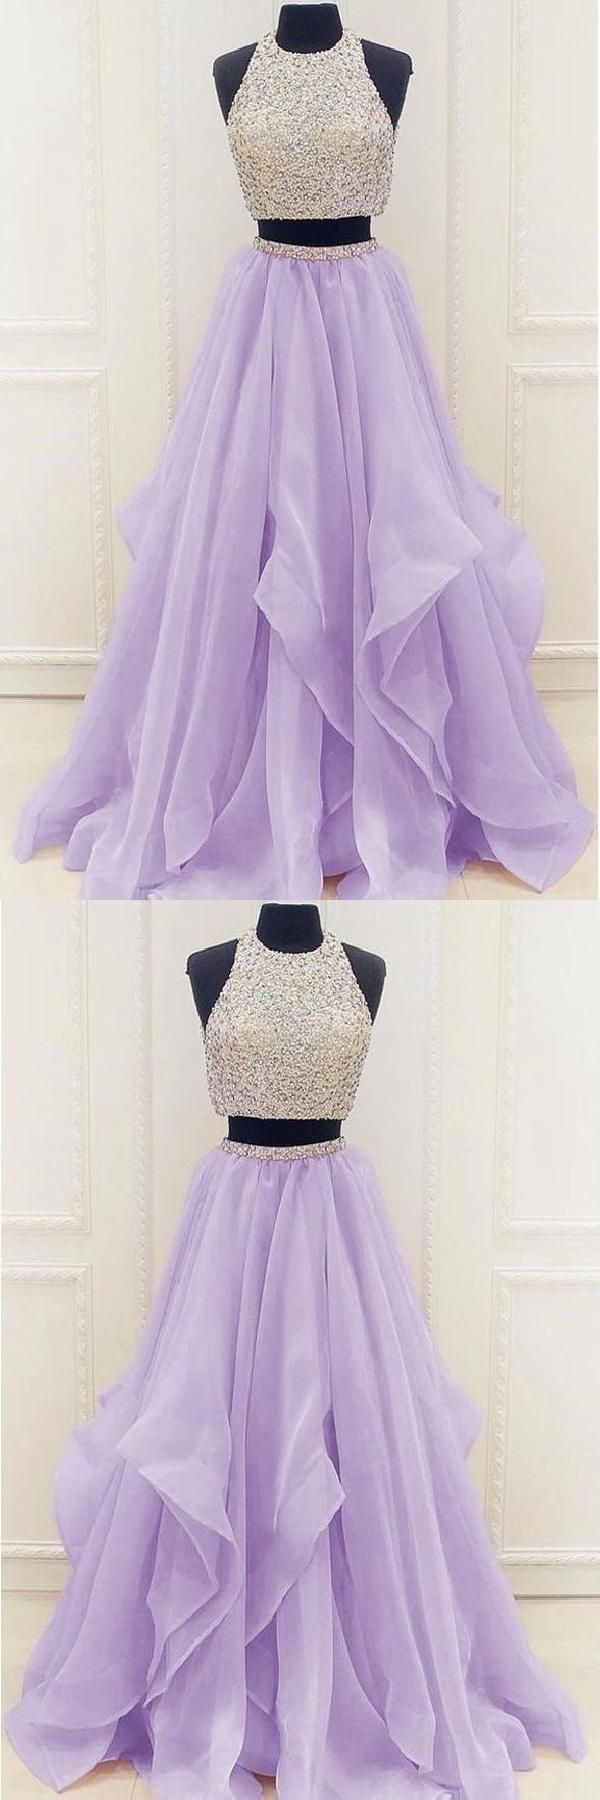 Beads Custom Dress Dresses Glorious Gowns Hilo Lilac Party Piece Prom Quinceanera Quinceane Prom Dresses Modest Best Prom Dresses Piece Prom Dress [ 1800 x 600 Pixel ]